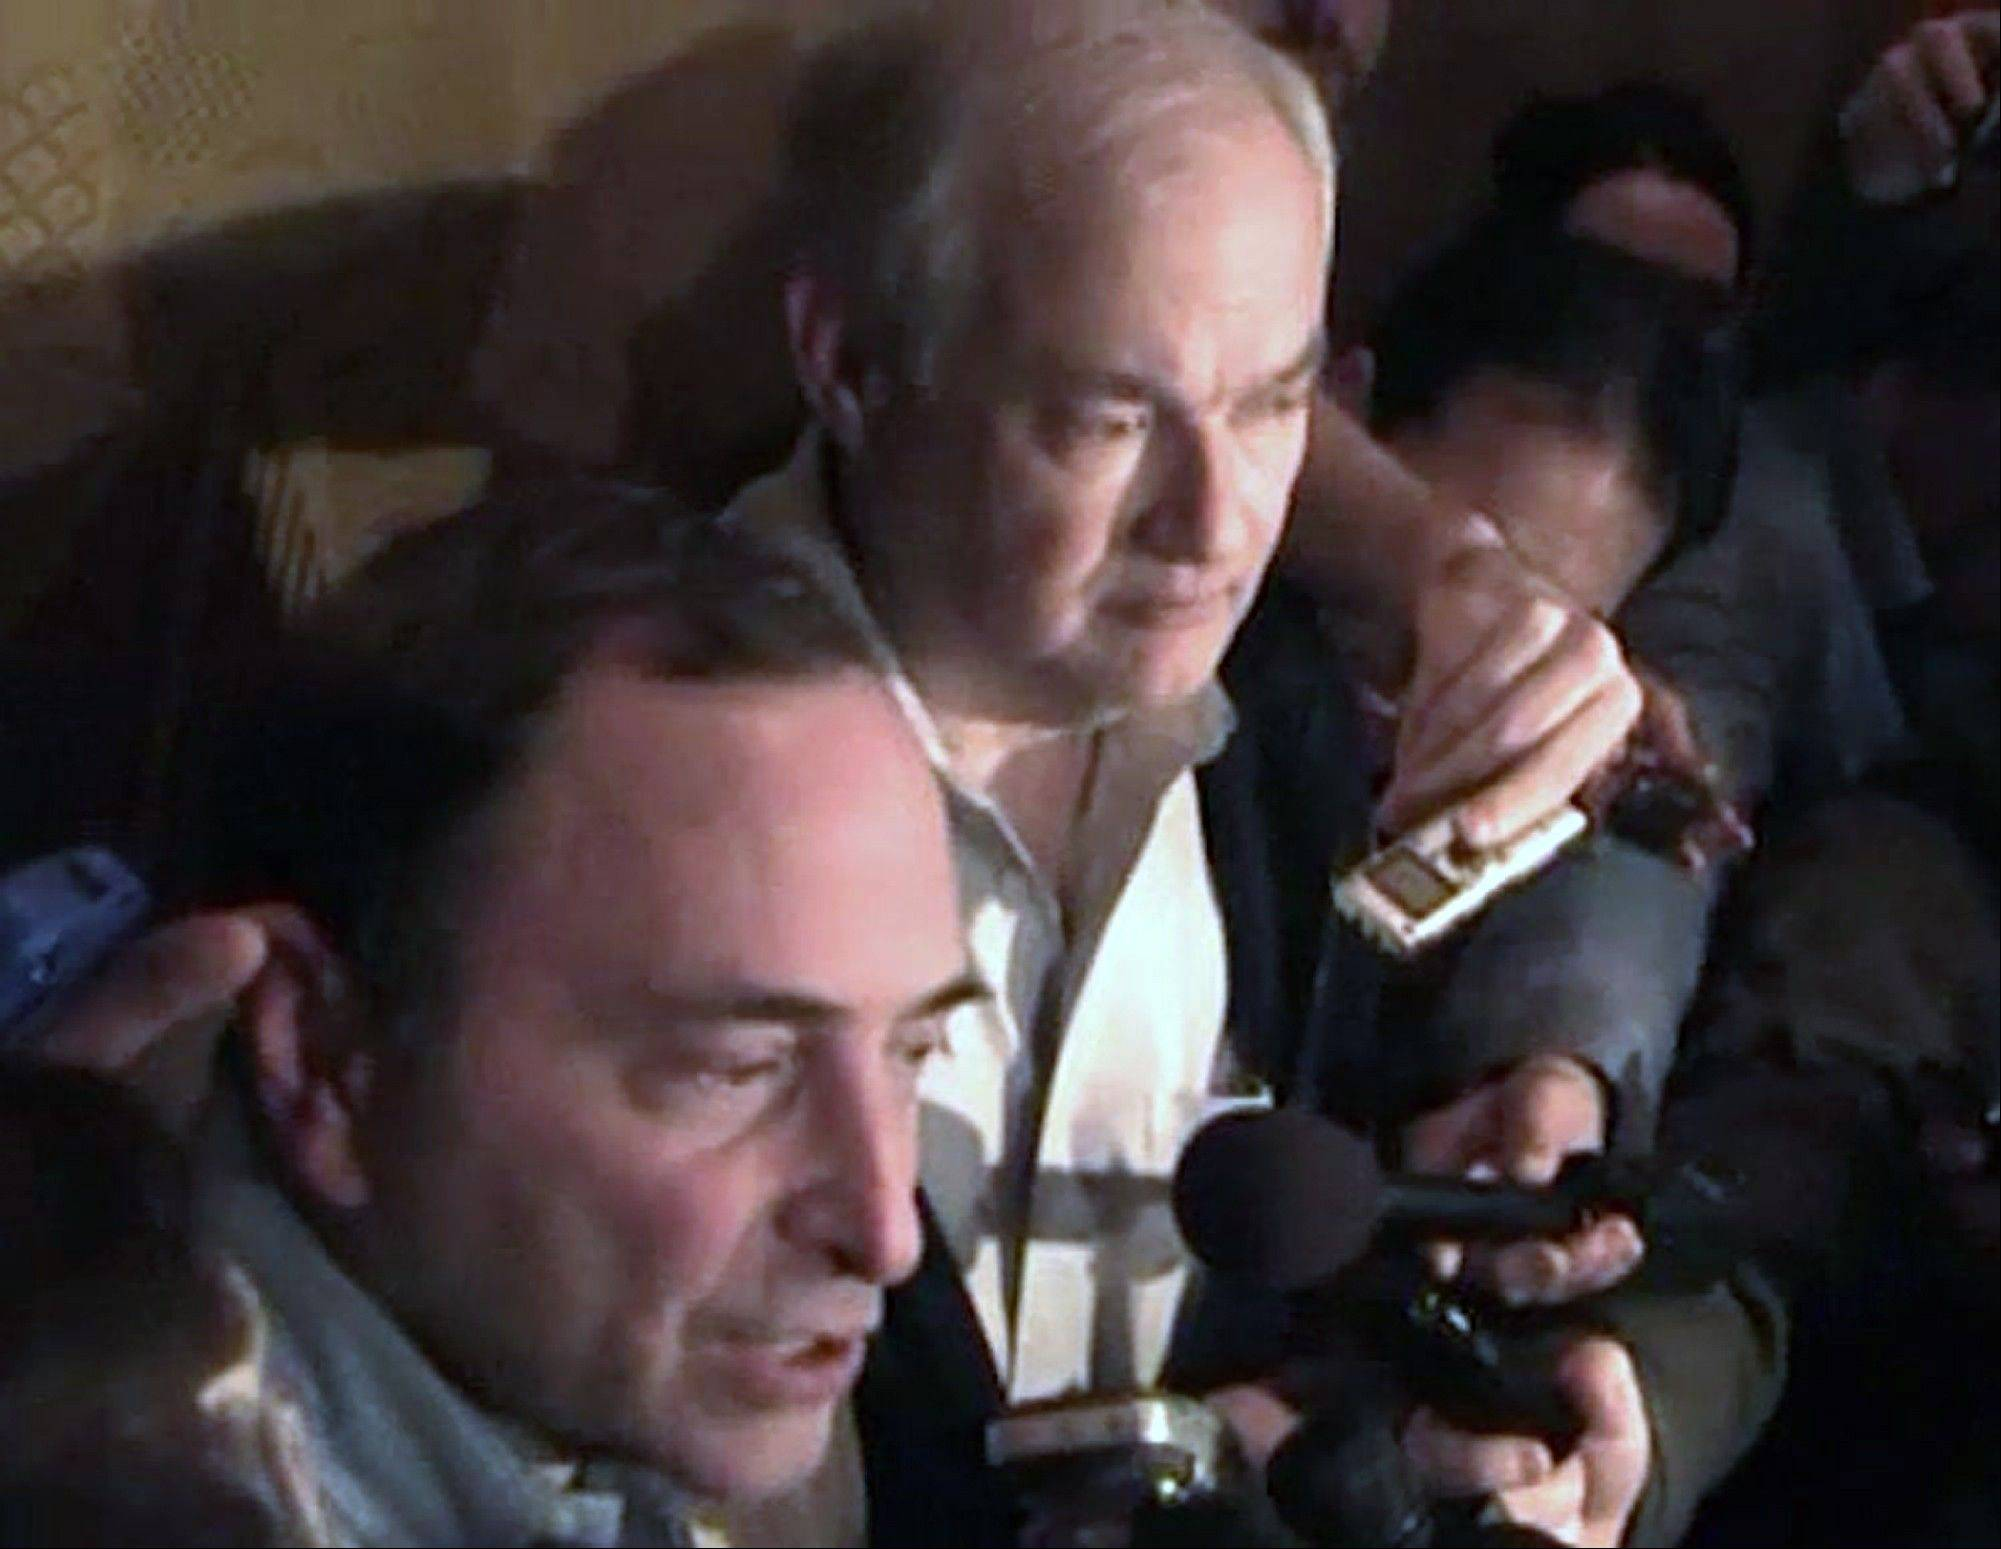 In this image from video, NHL commissioner Gary Bettman, left, talks to the media as Donald Fehr, executive director of the NHL Players' Association, stands next to him, in New York, early Sunday, Jan. 6, 2013. A tentative deal to end the 113-day NHL lockout was reached early Sunday morning following a marathon 16-hour negotiating session.